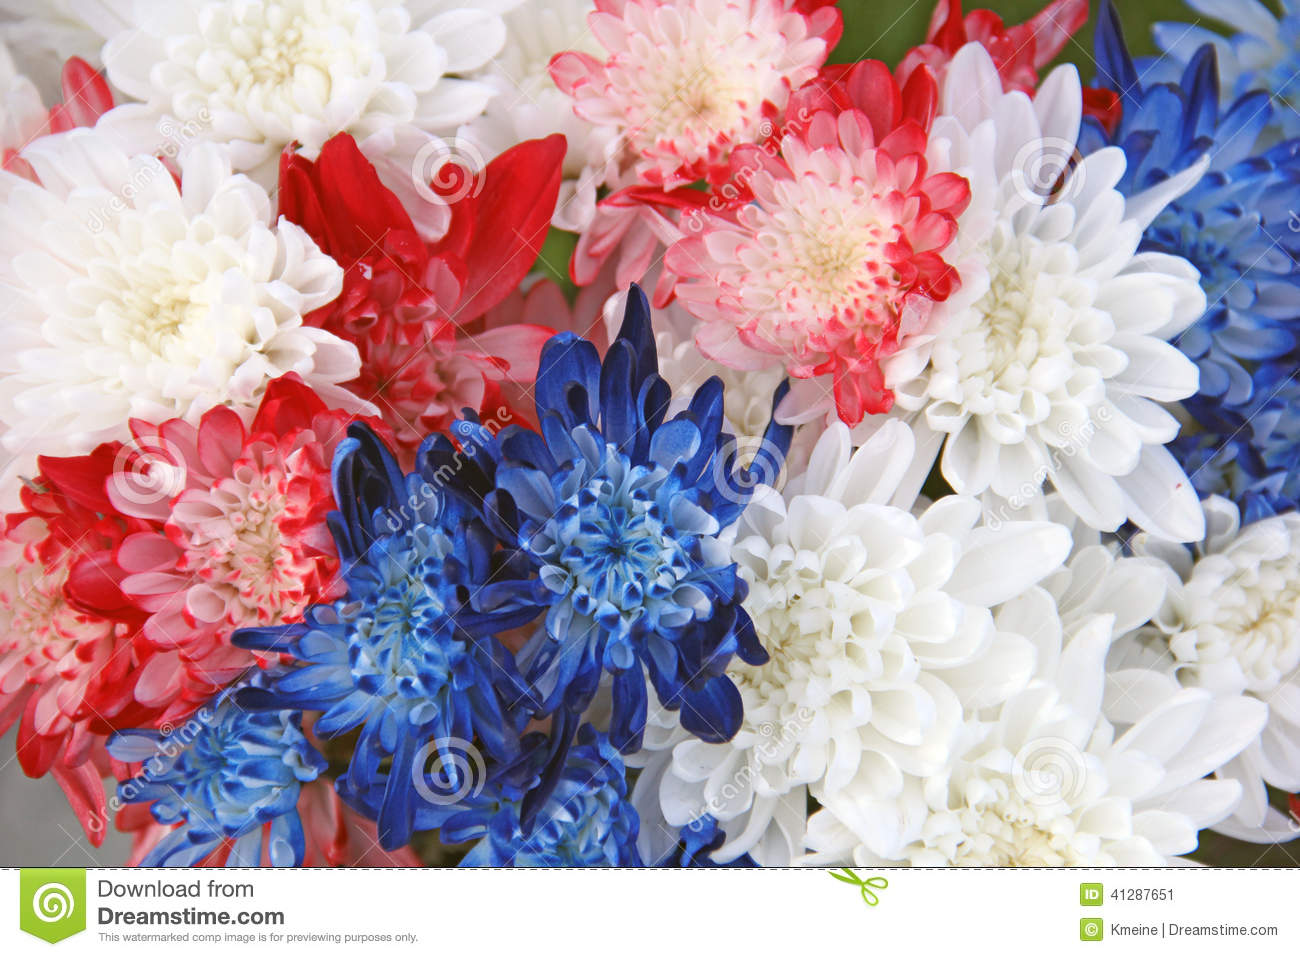 Red White And Blue Flower Bouquet Image collections - Flower ...